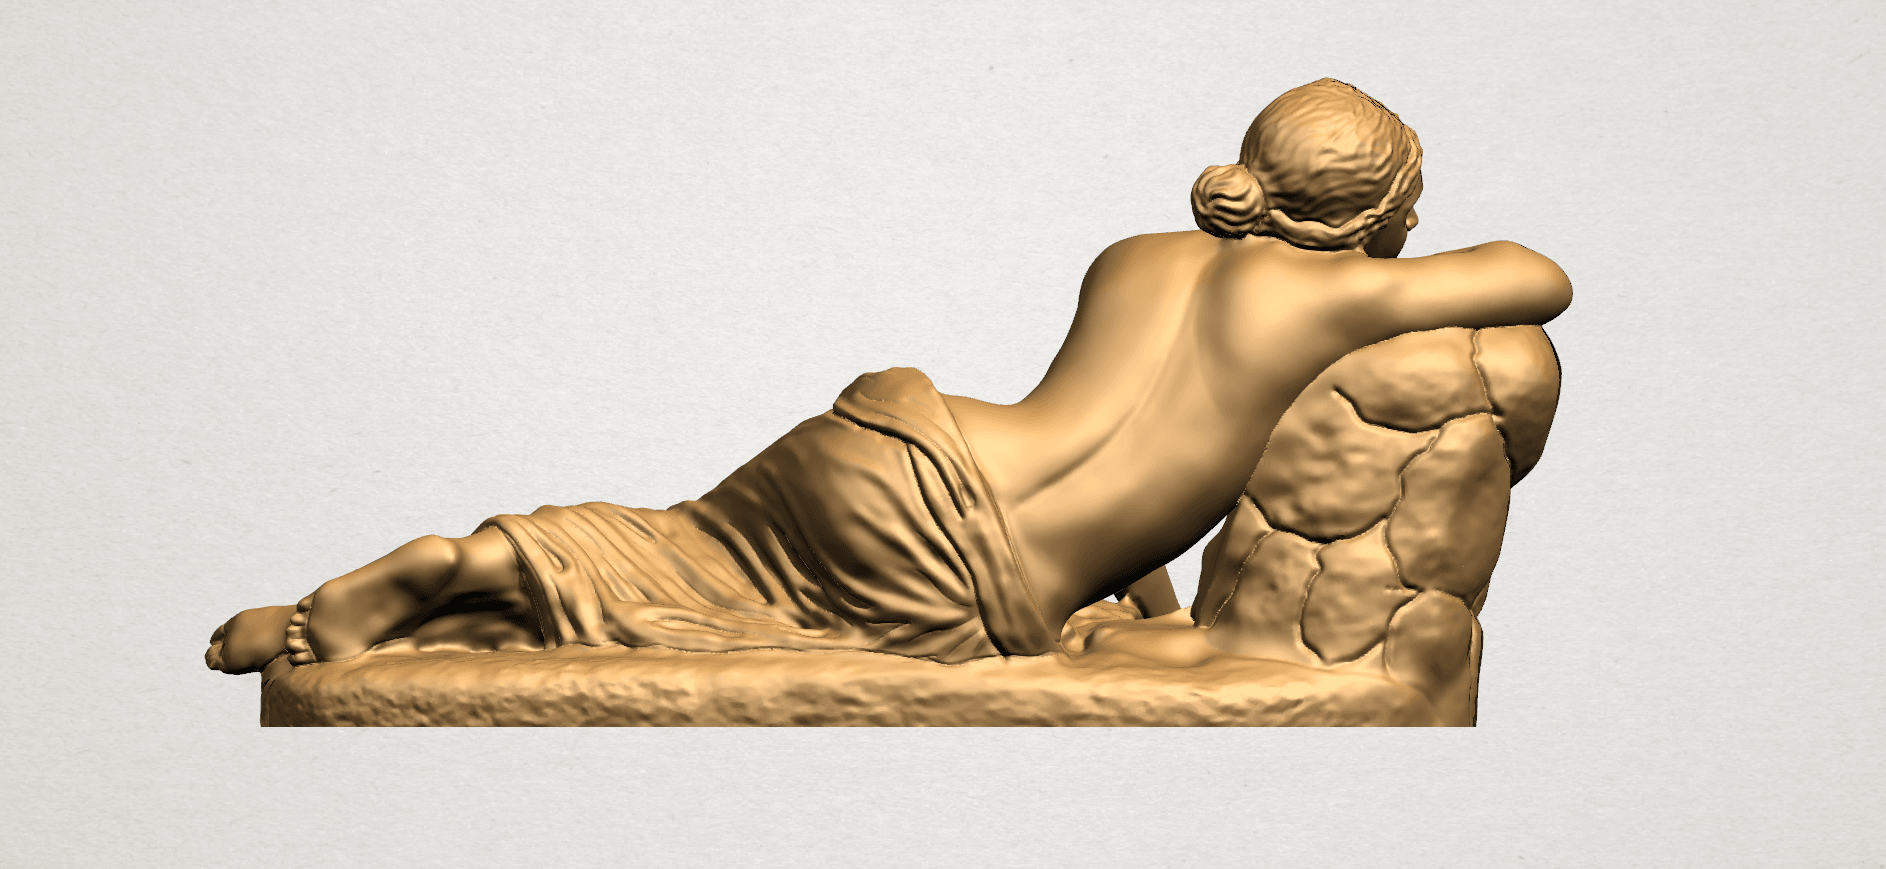 Naked Girl - Lying on Side - A06.png Download free STL file Naked Girl - Lying on Side • 3D printer template, GeorgesNikkei